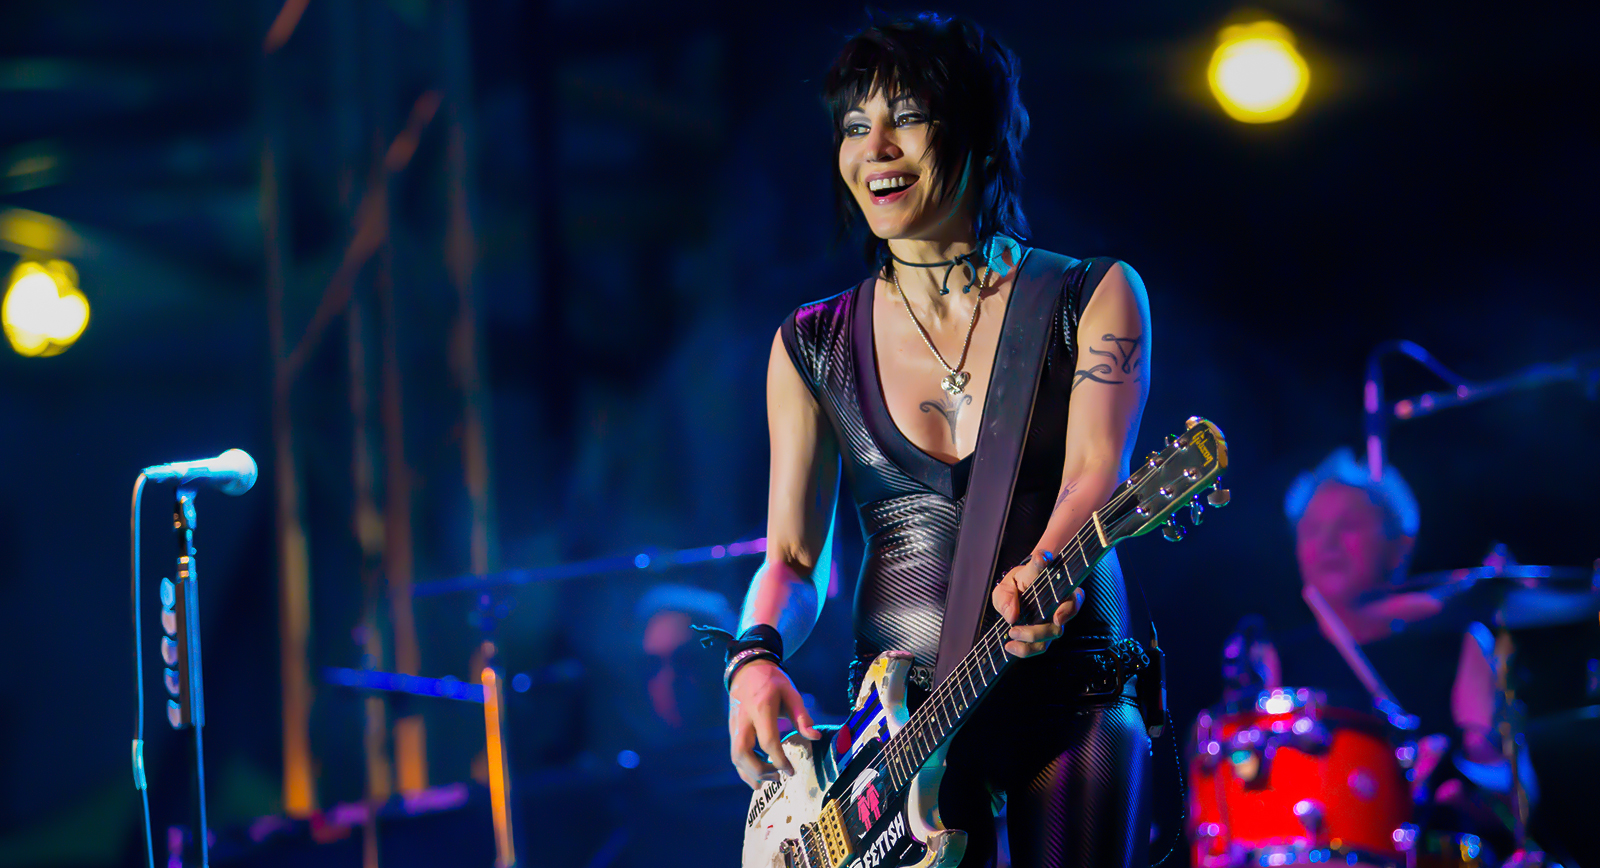 Joan-Jett-&-the-Blackhearts-Heart-Cheap-Trick-Tour-2016-Rock-Hall-Three-for-All-FIjpg